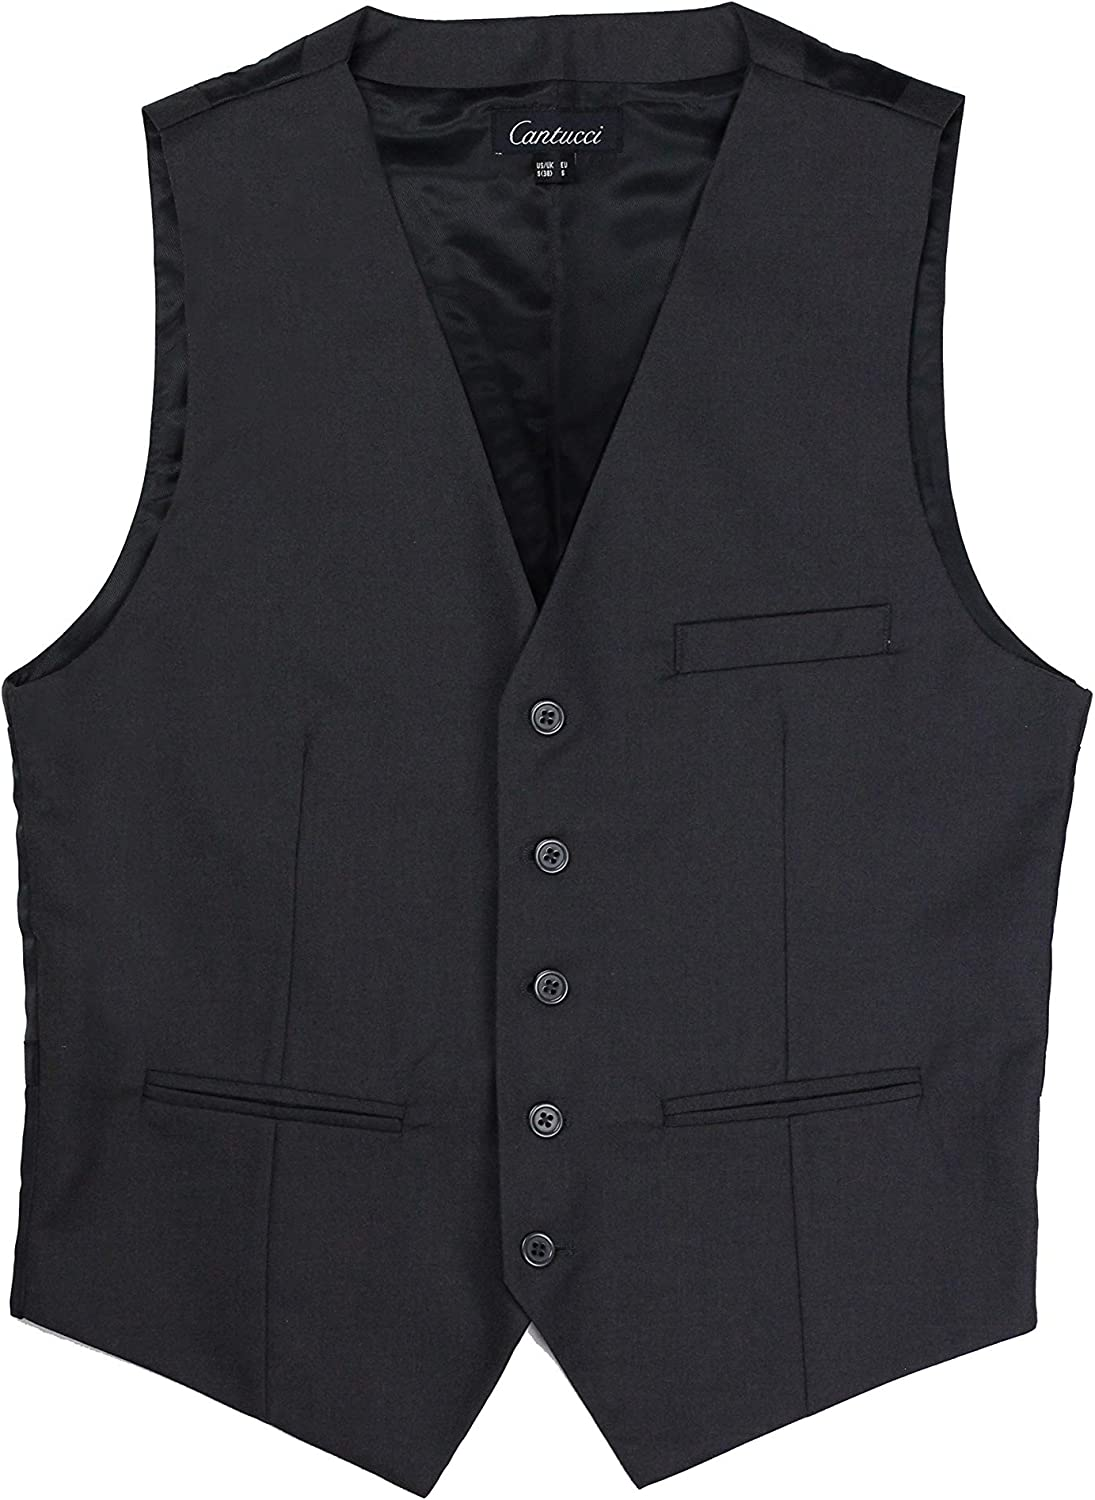 PUCCINI Bows-N-Ties Mens Suit Vest Single Breasted Dress Vest for Men Vests with 3 Functional Pockets